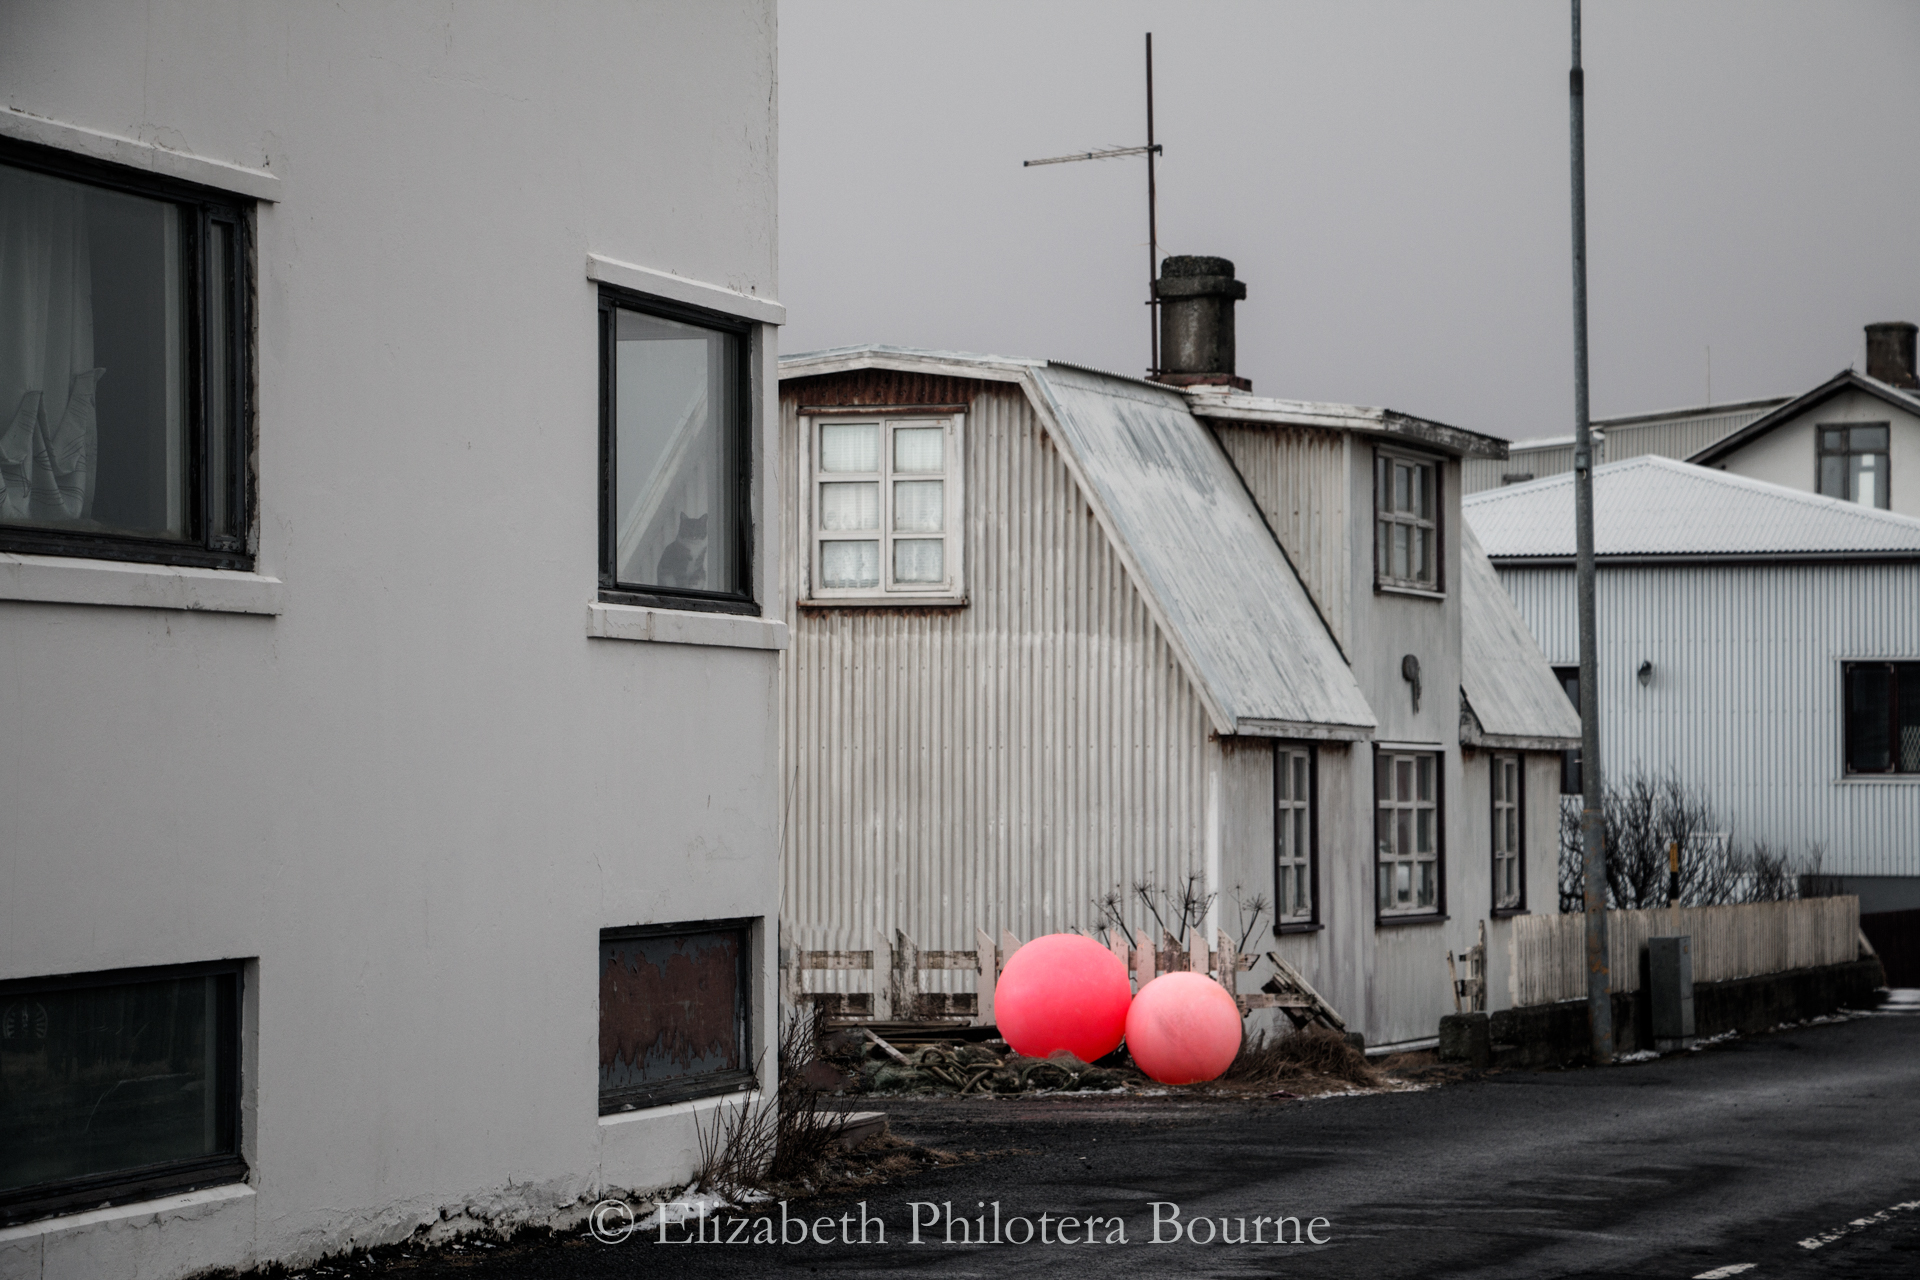 Winter street in Eyrarbakki with gray houses, gray sky, and pink fishing buoys